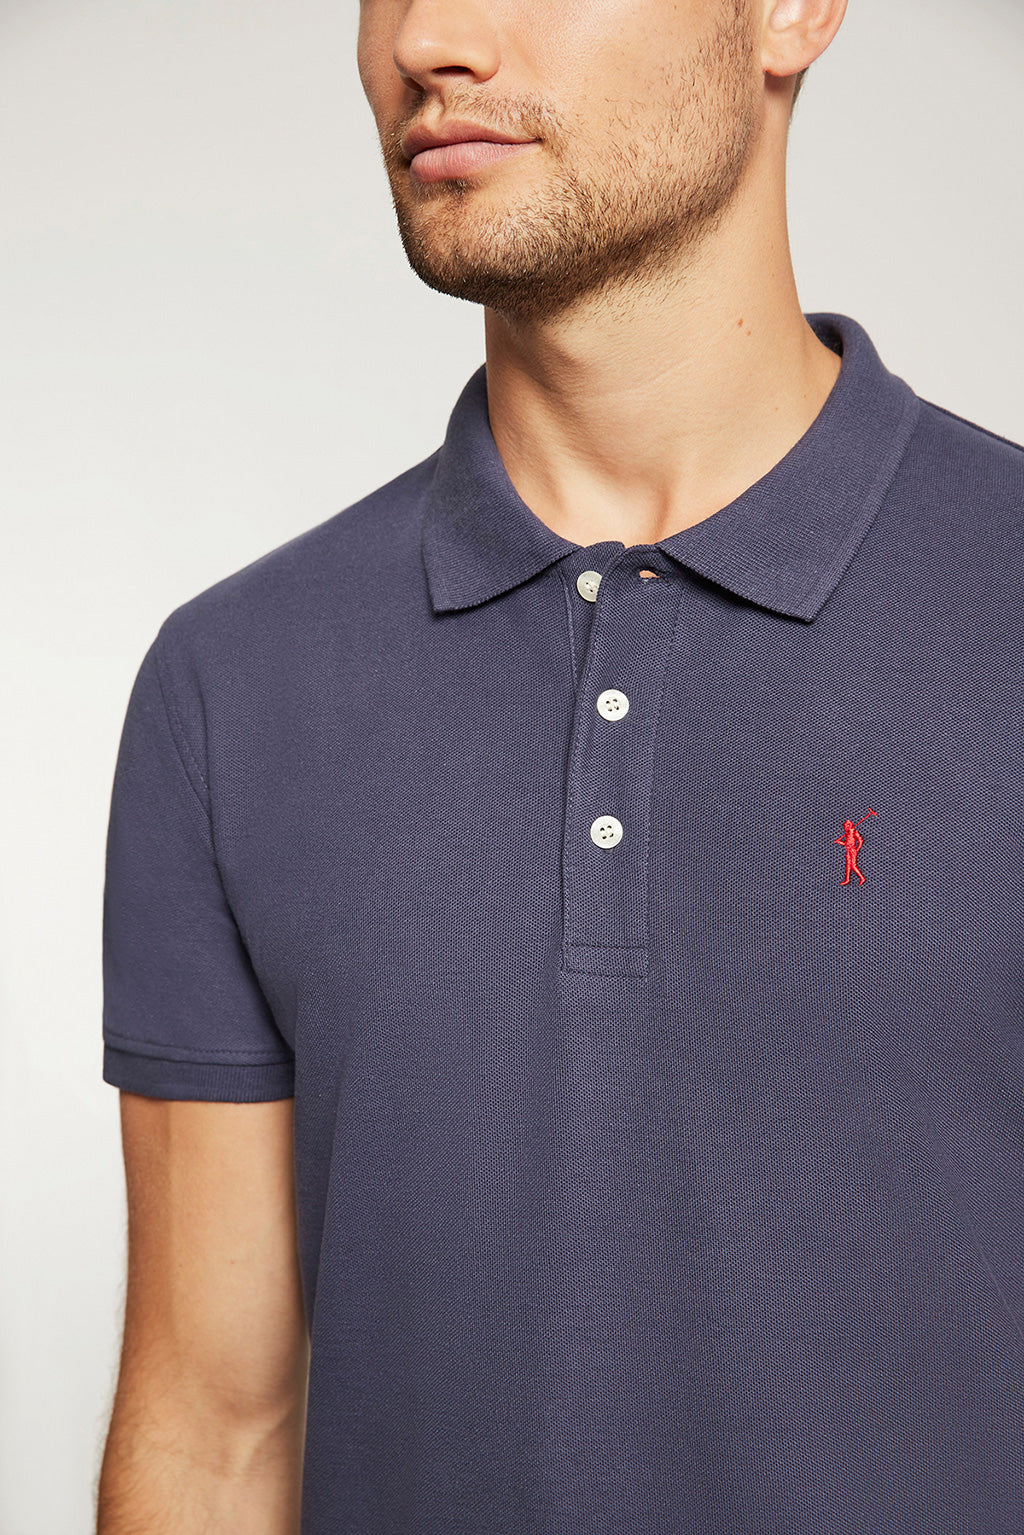 Polo piqué azul denim